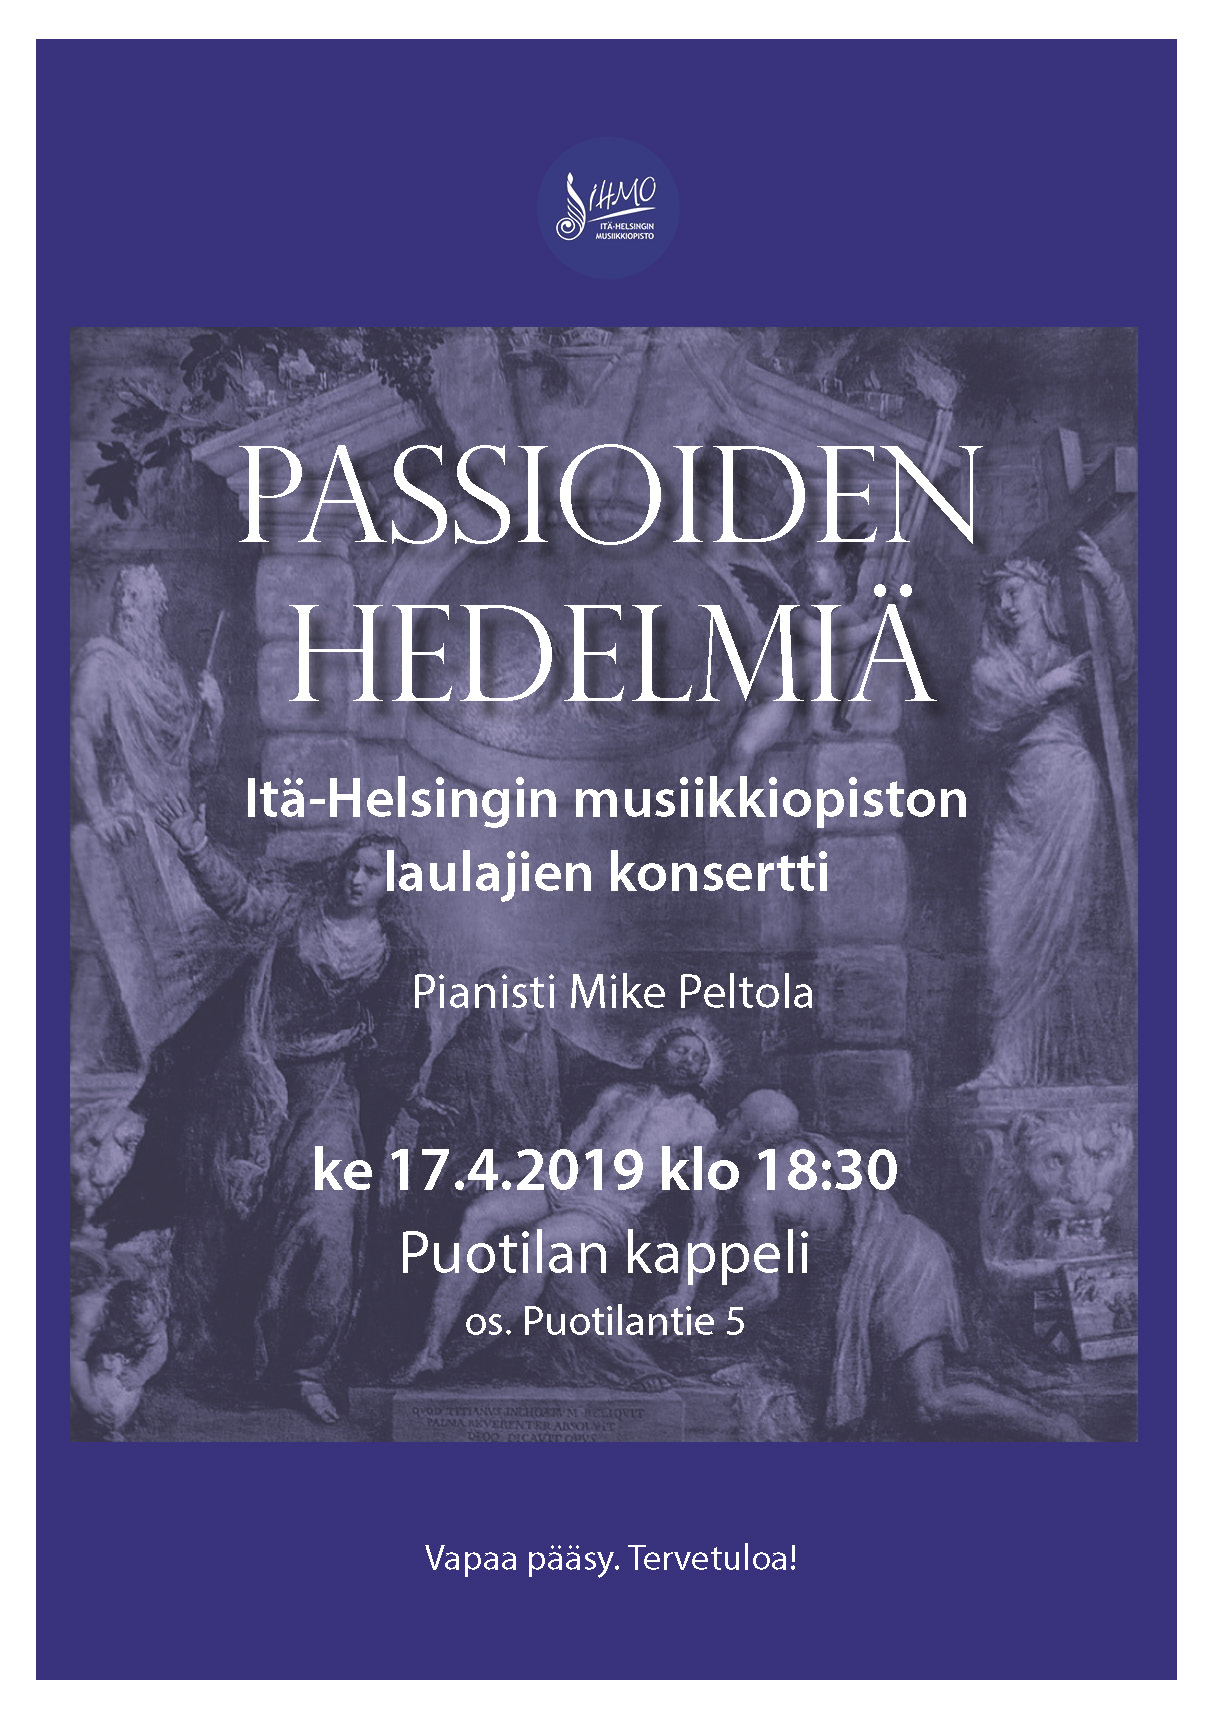 1886841566-Passion_hedelmiä_1704_2019.jpg